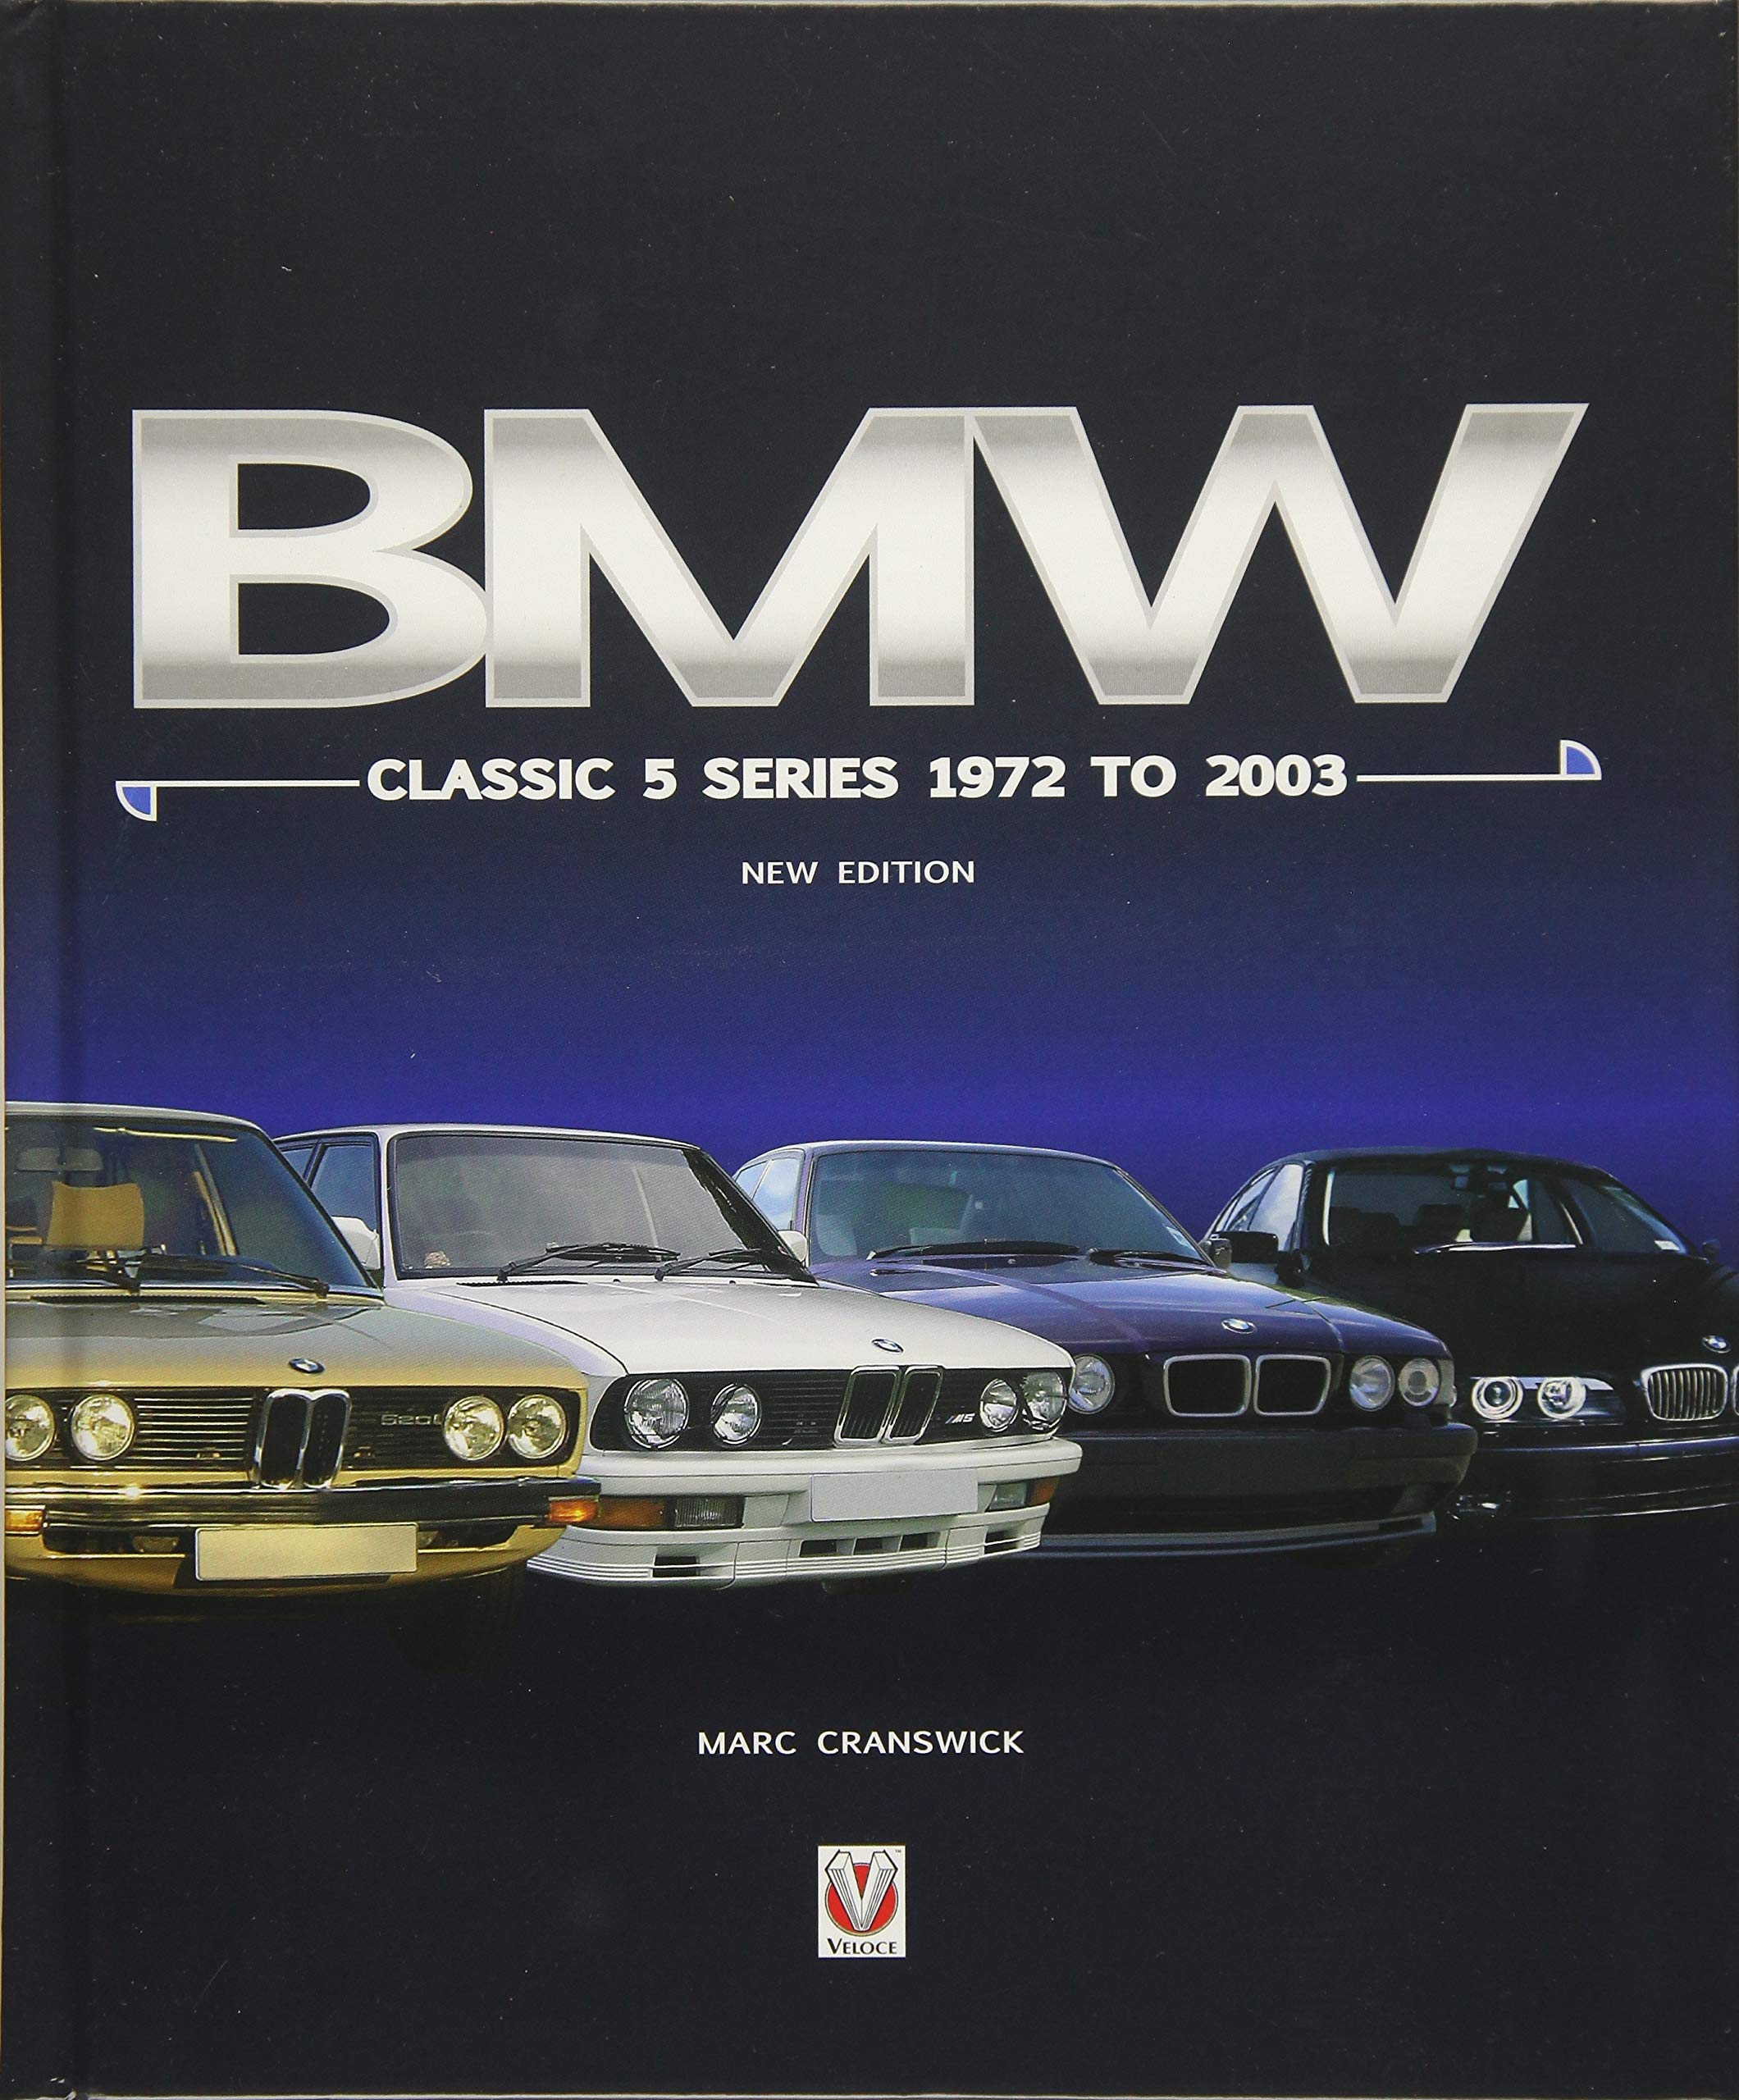 BMW Classic 5 Series 1972 to 2003: New Edition pdf